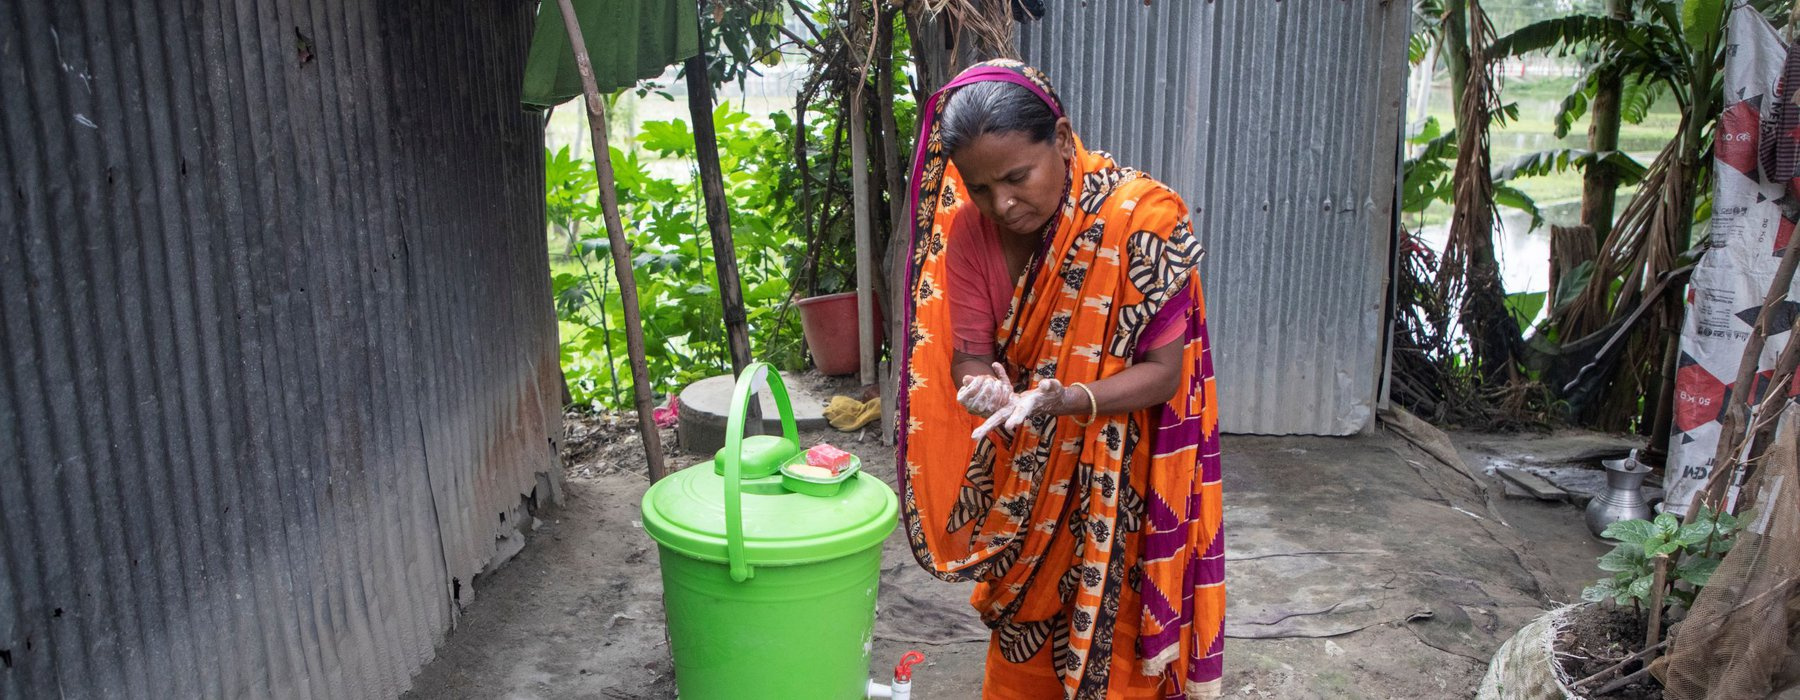 Mosammat Rabeya Begum washes her hands at an outdoor tap